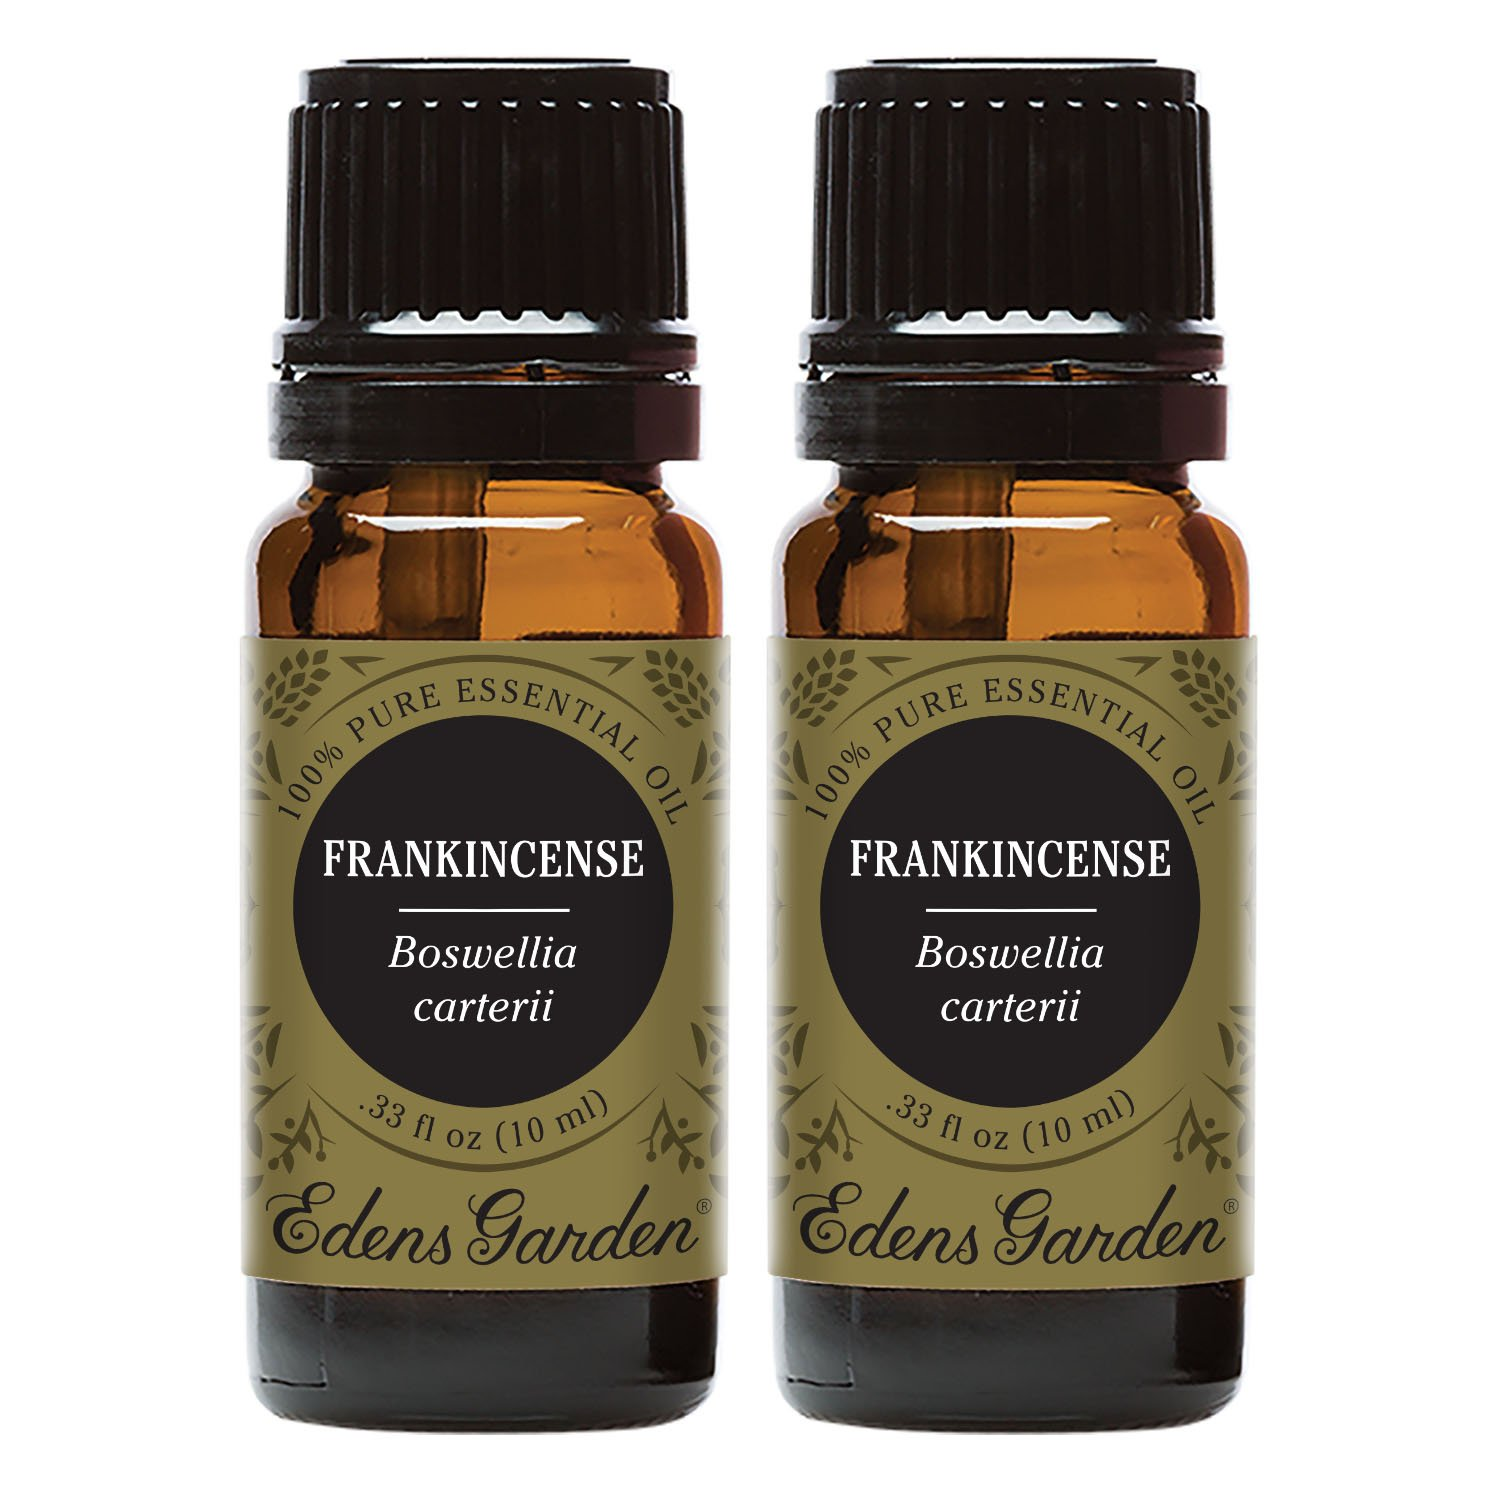 Edens Garden Frankincense Carterii Essential Oil, 100% Pure Therapeutic Grade (Inflammation & Skin Care) 10 ml Value Pack